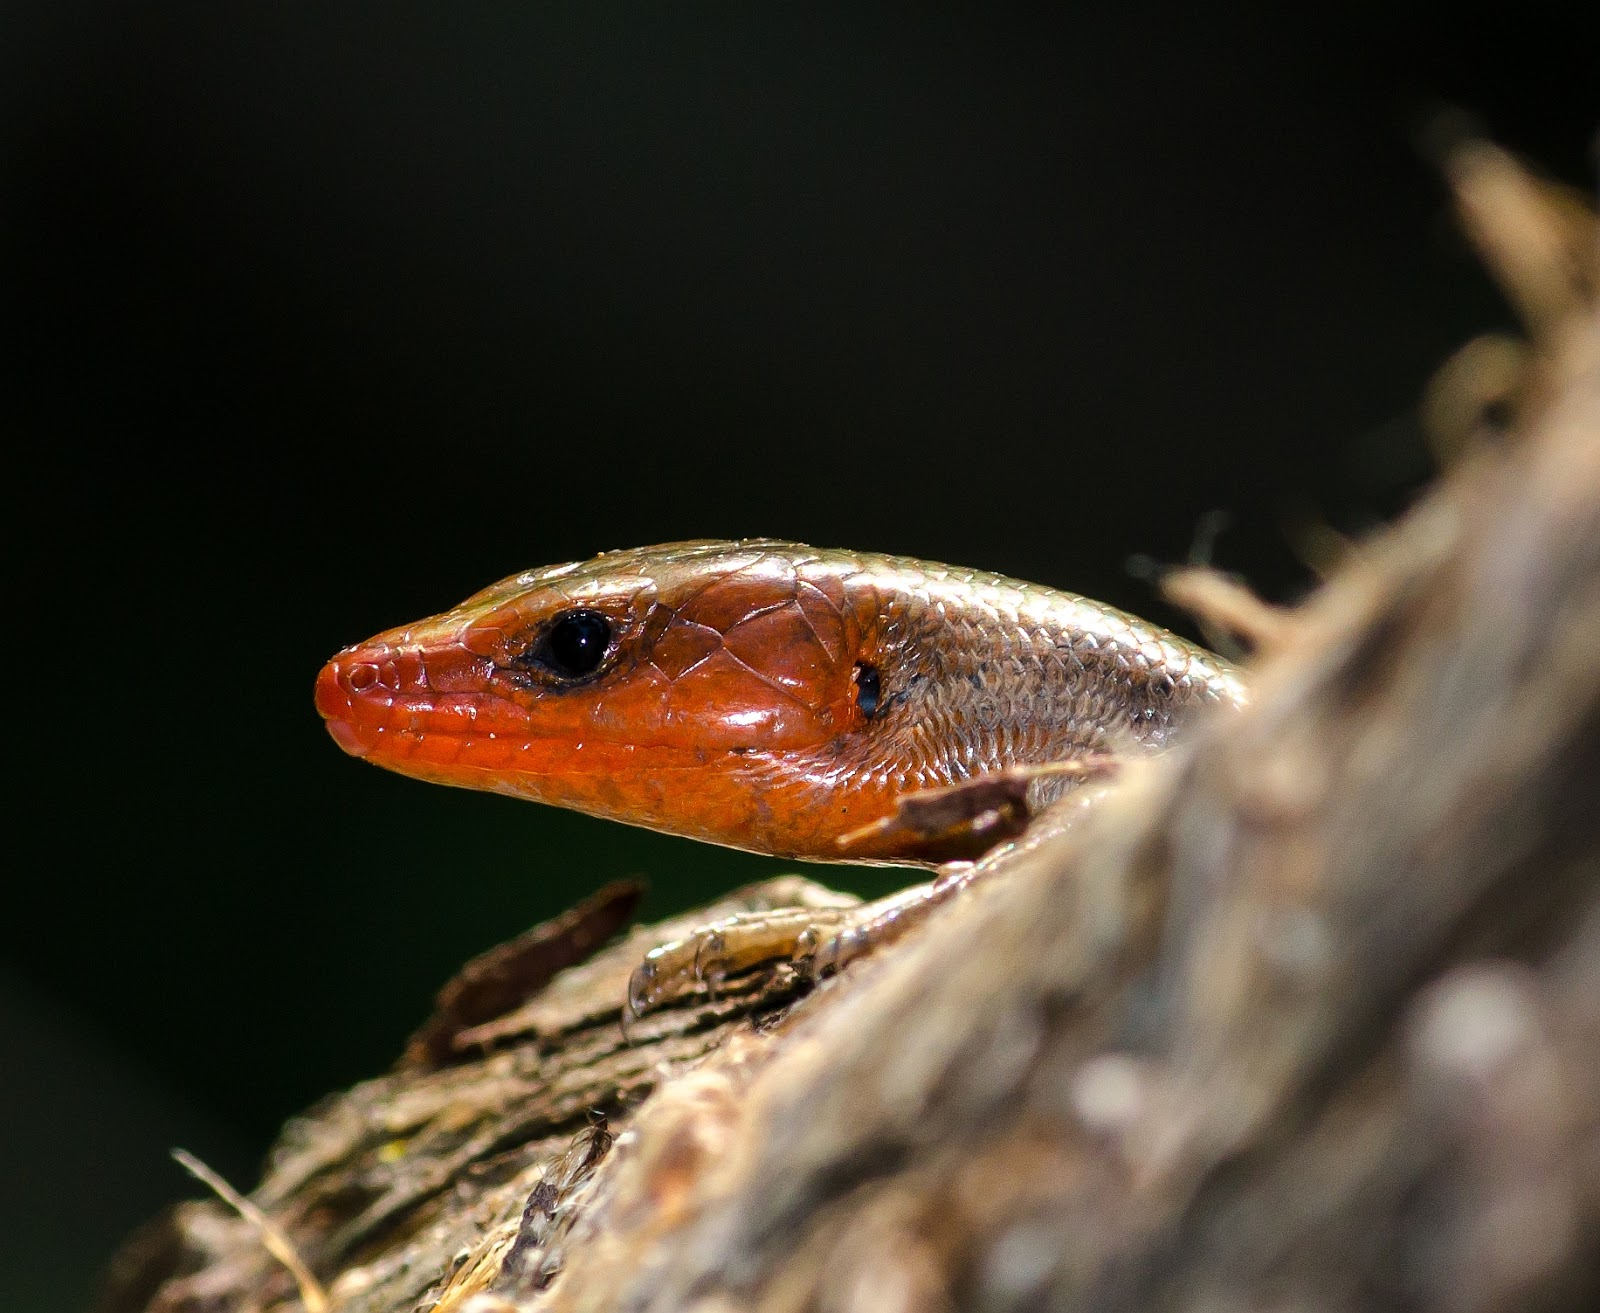 Five-Lined Skink male